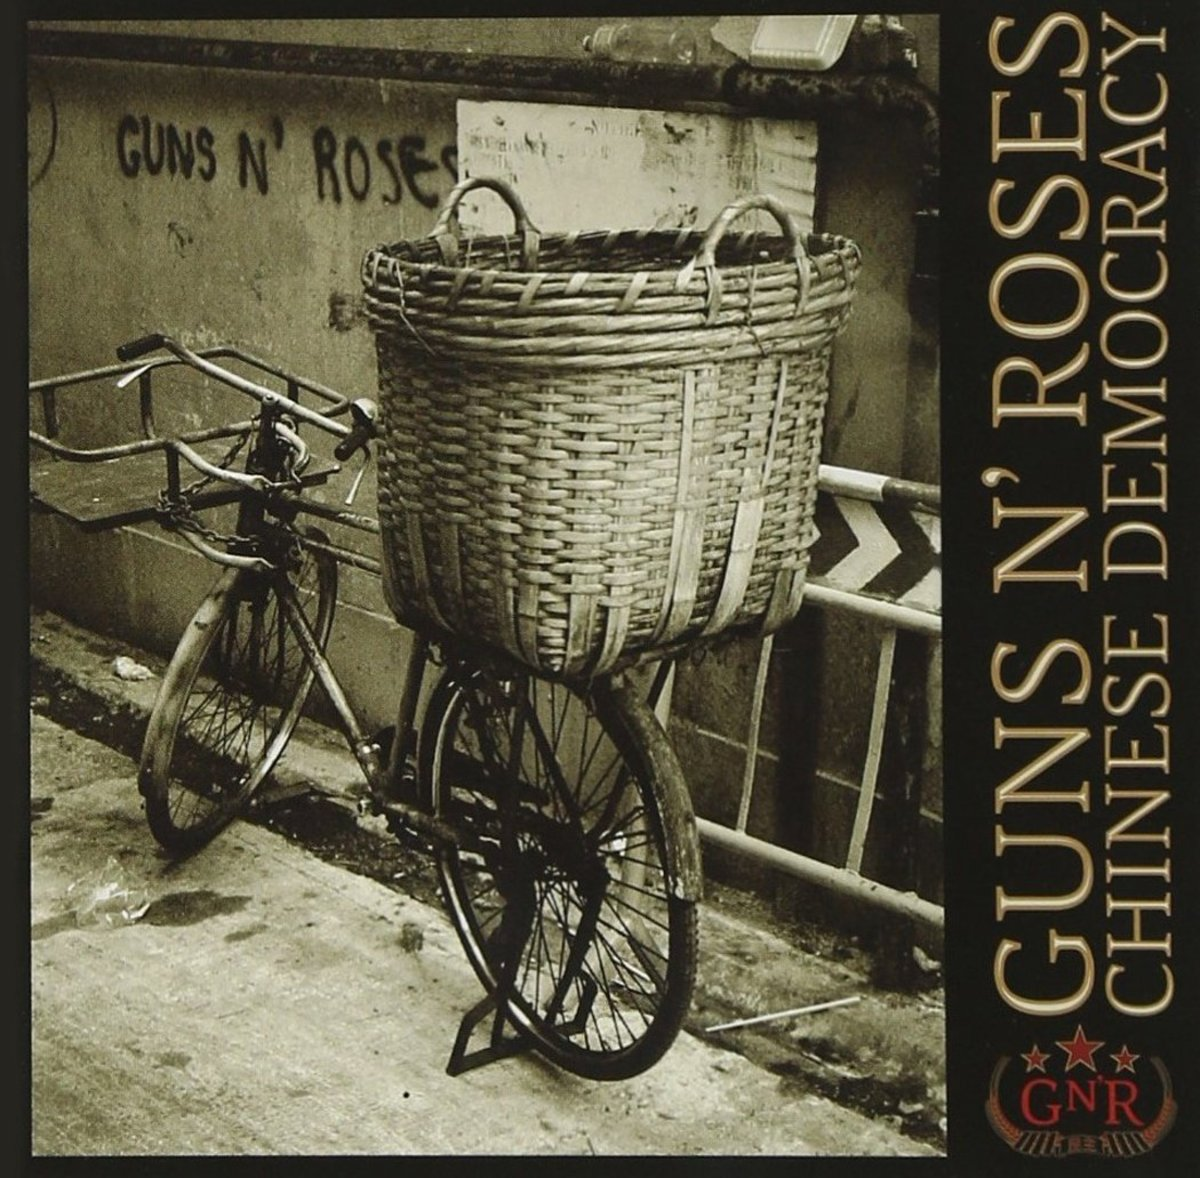 Guns N' Roses Chinese Democracy: An Underrated Axl Rose Solo Album